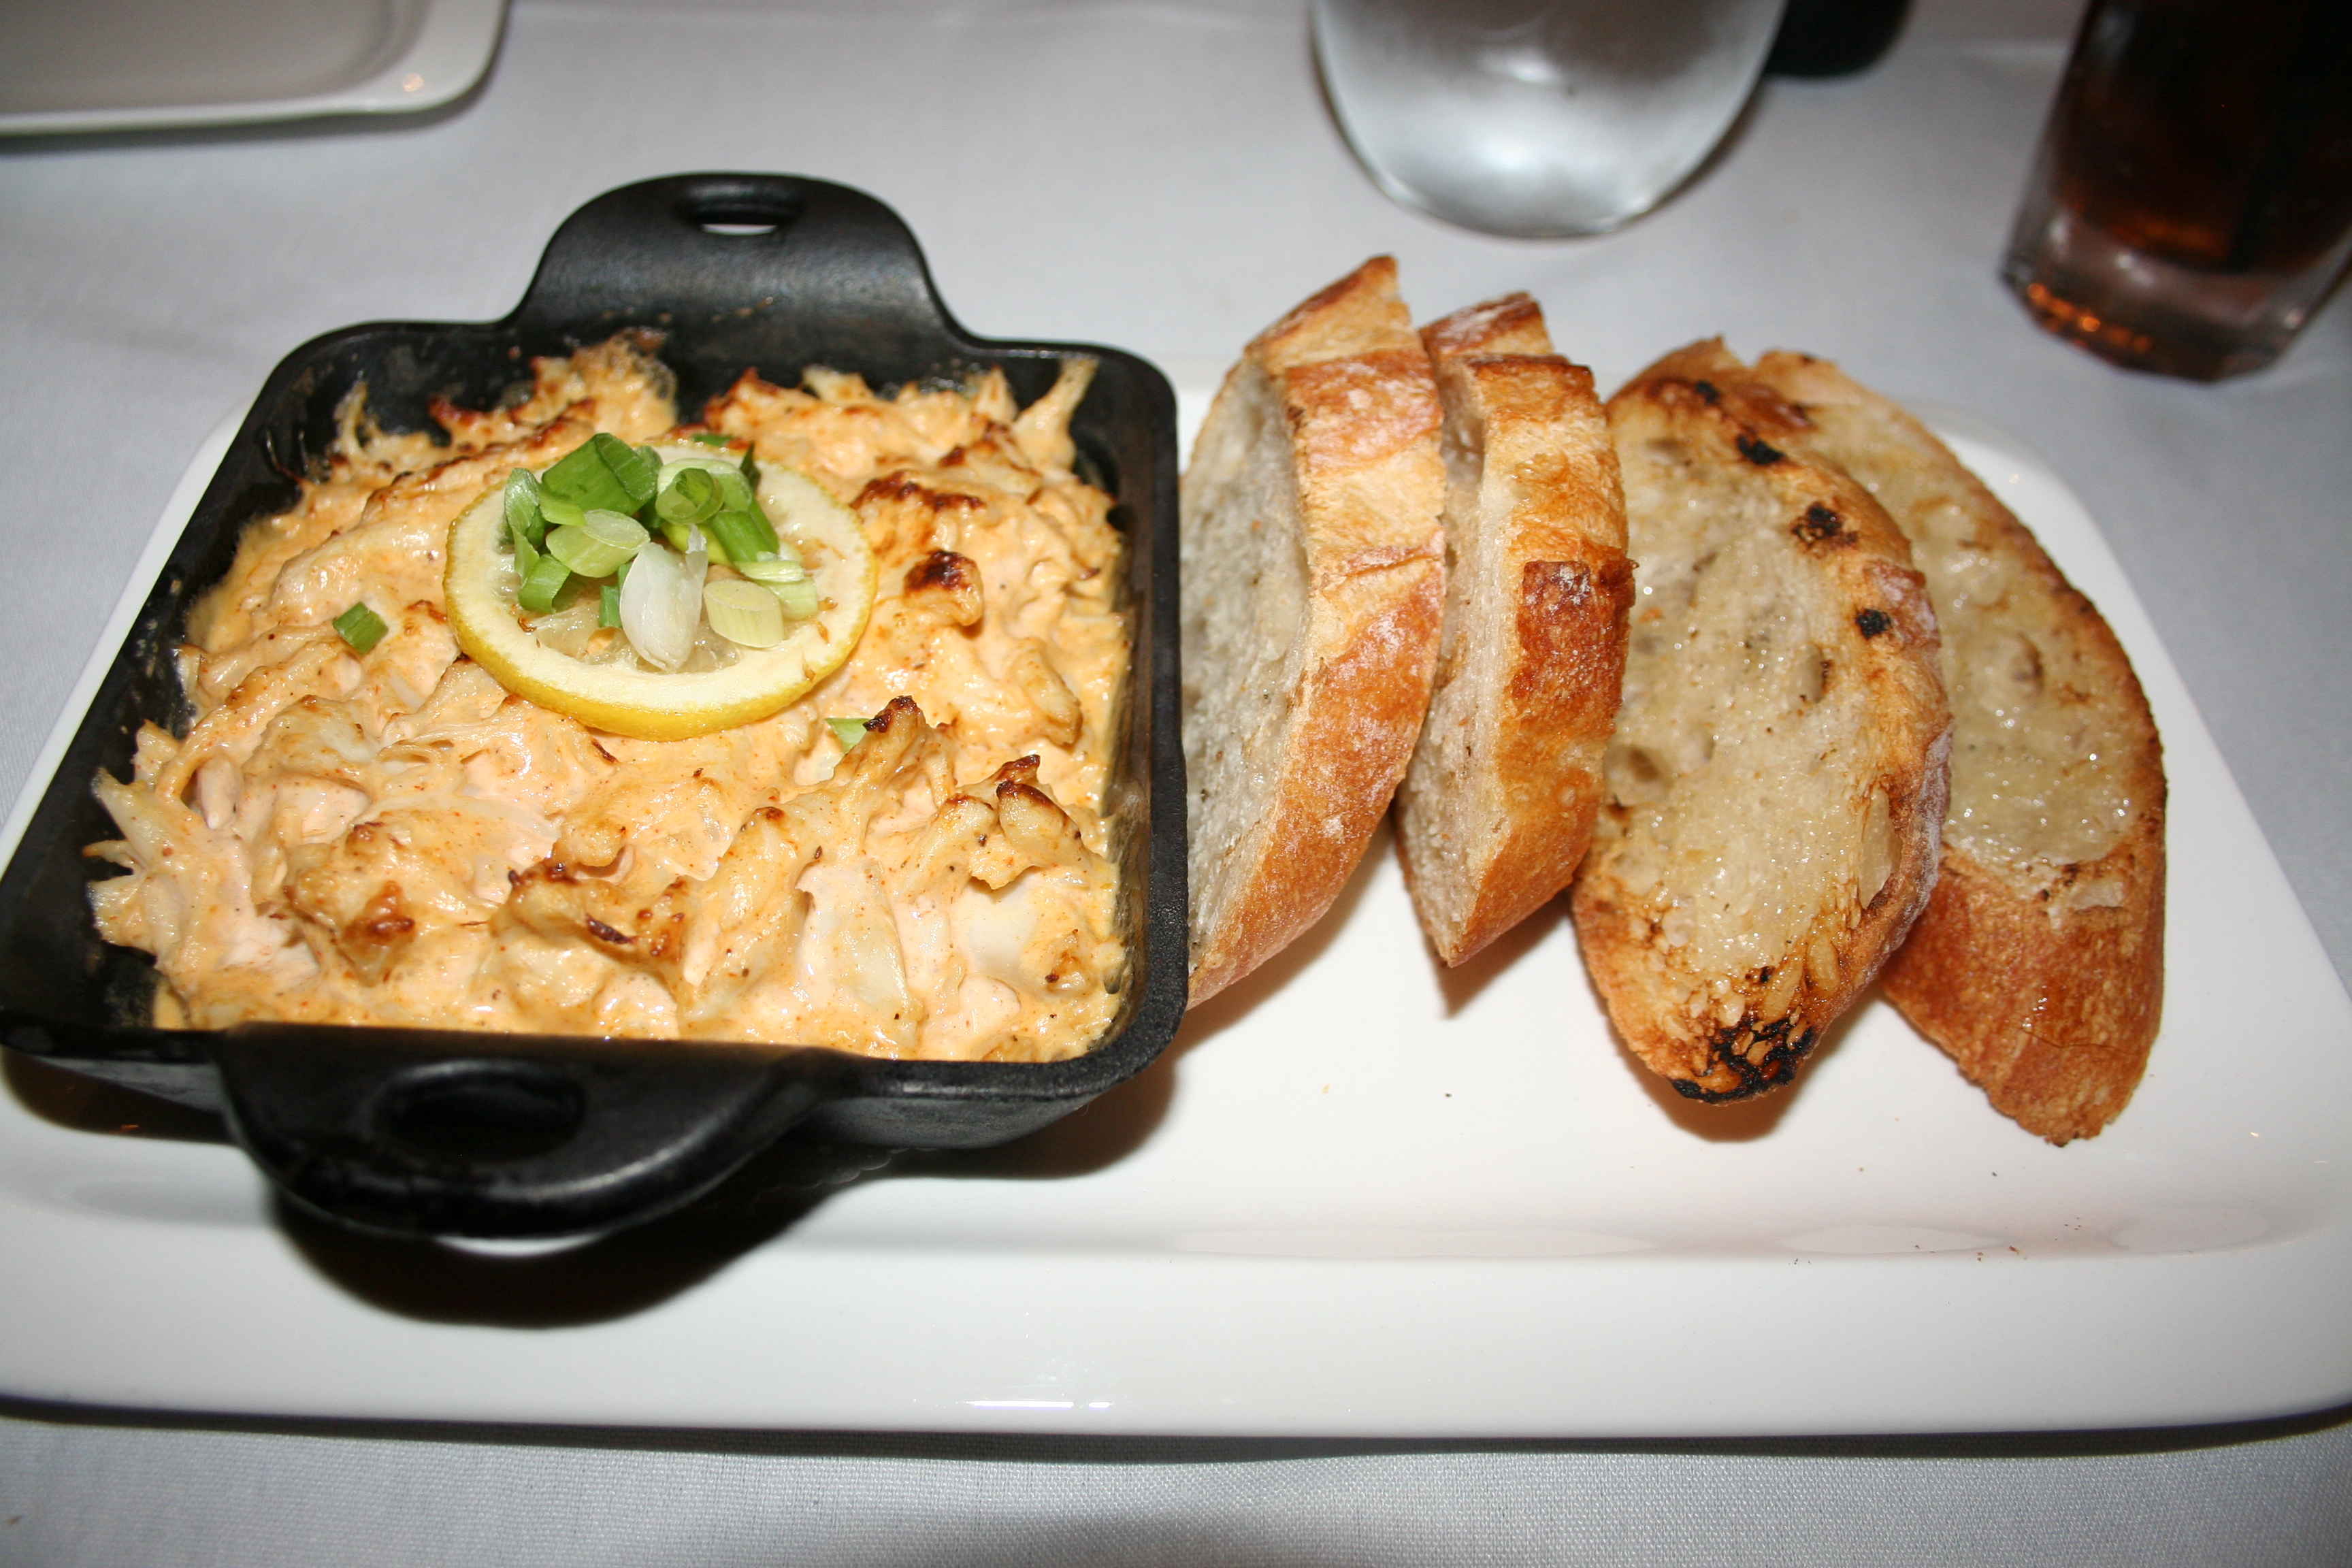 The spicy crab dip was tied for the best dish of the meal with the shrimp and grits. (Photo: Mark Heckathorn/DC on Heels)